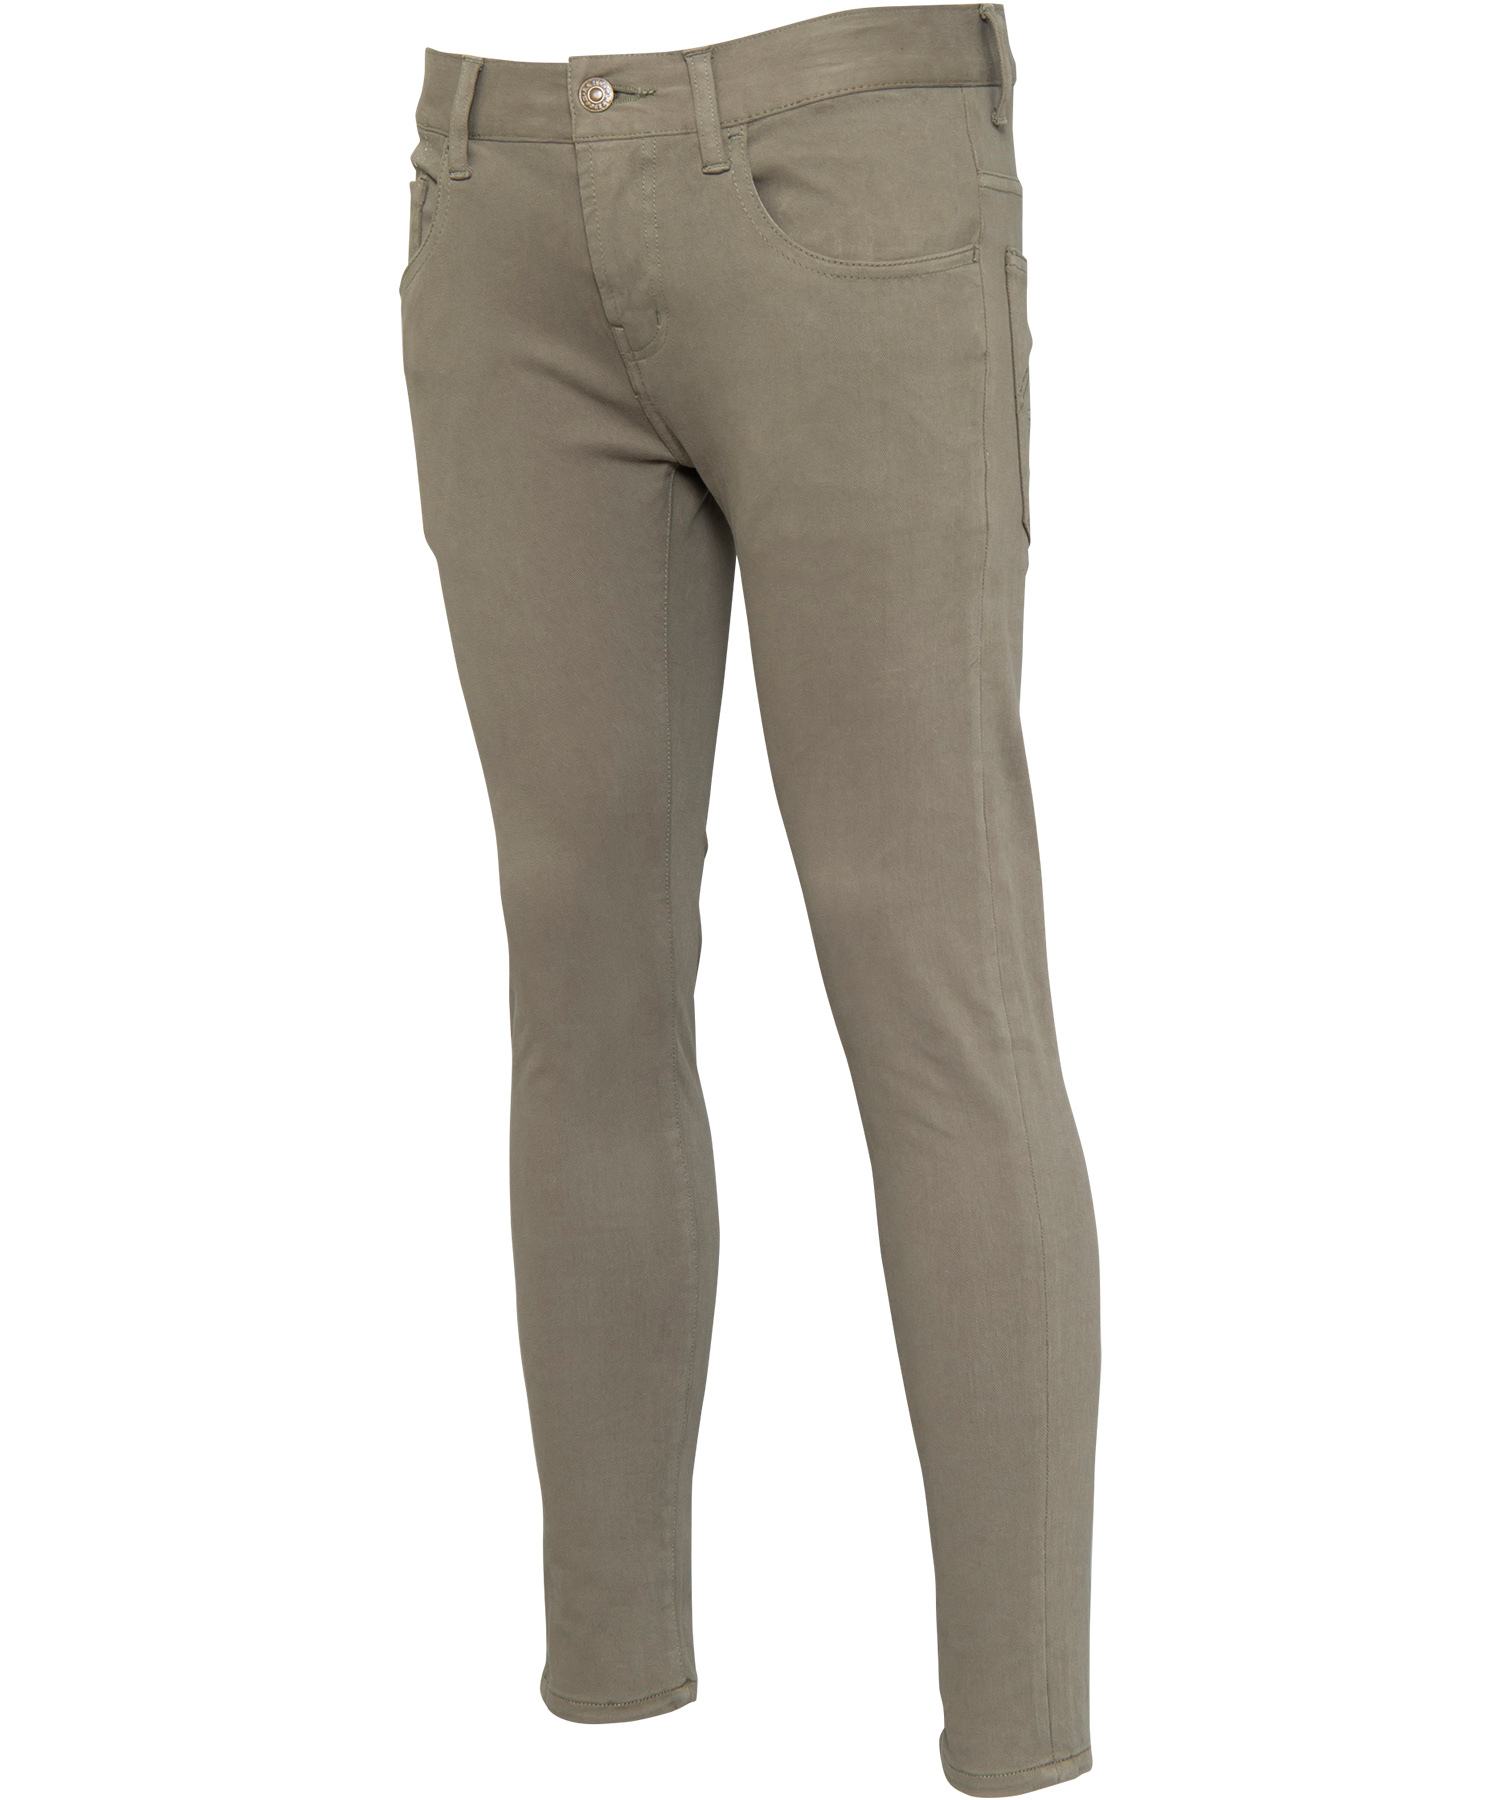 HYPER STRETCH COOL TOUCH SKINNY PANTS[REP068]